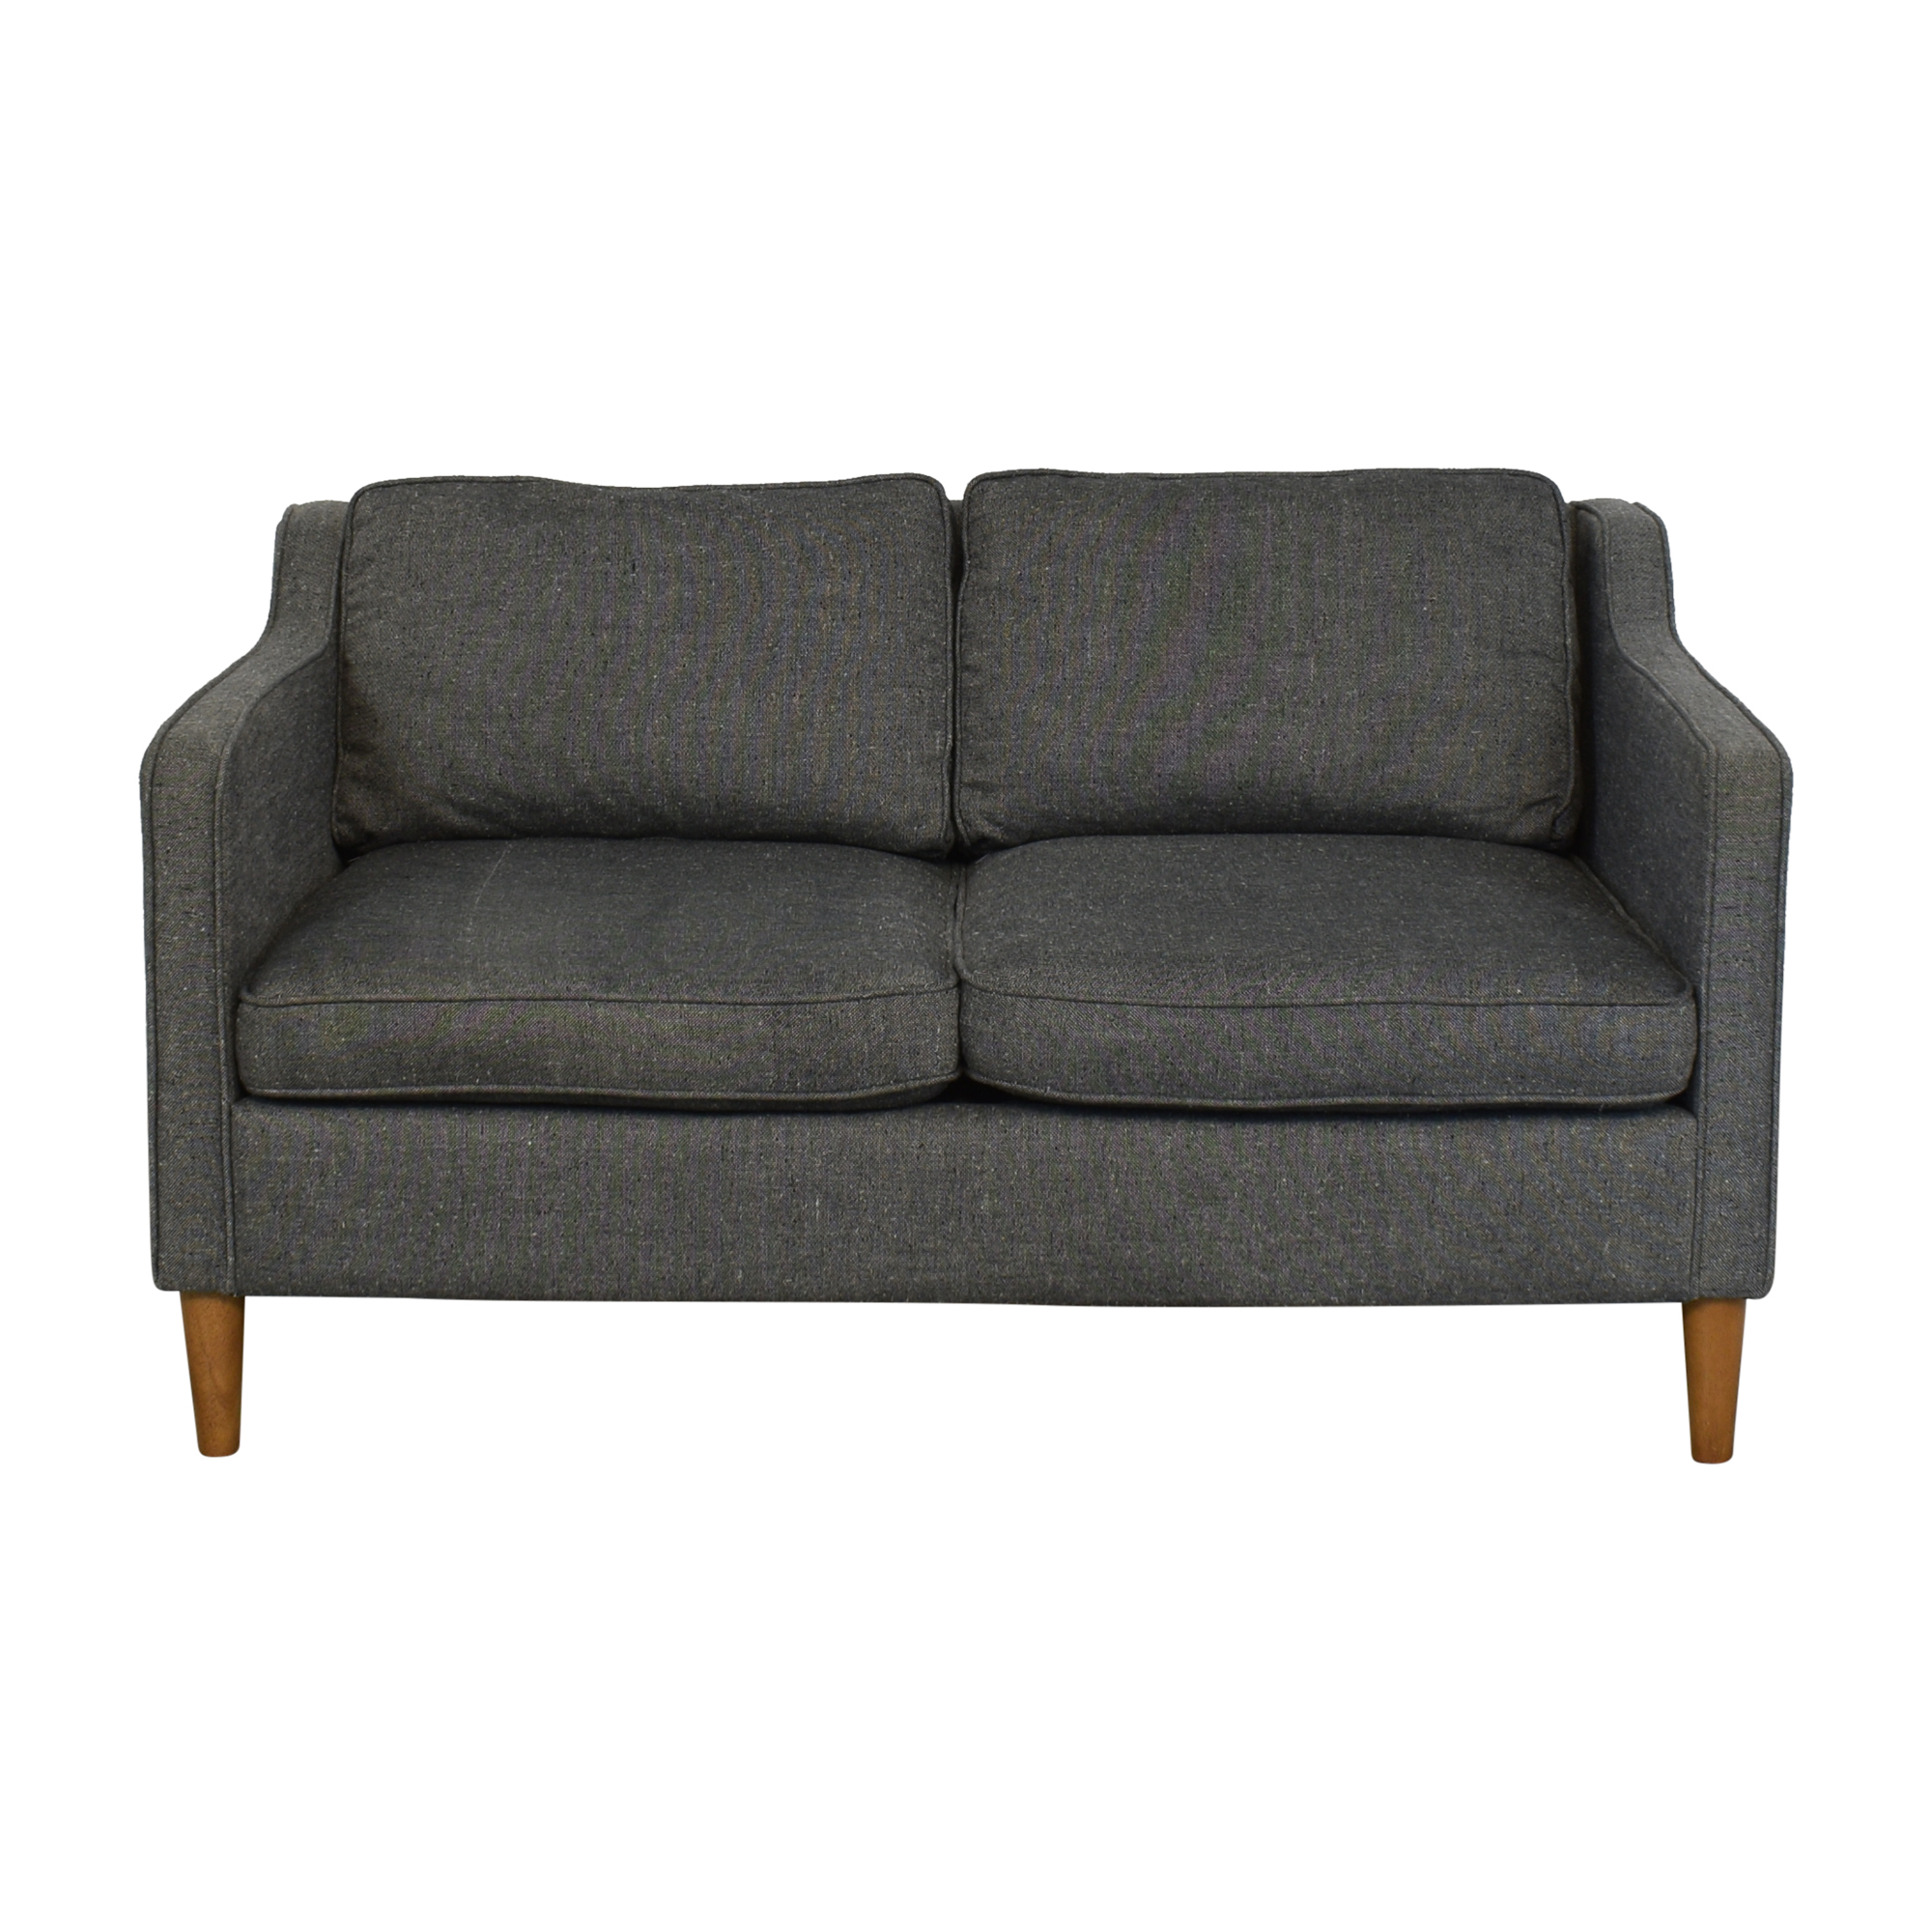 West Elm Hamilton Loveseat West Elm